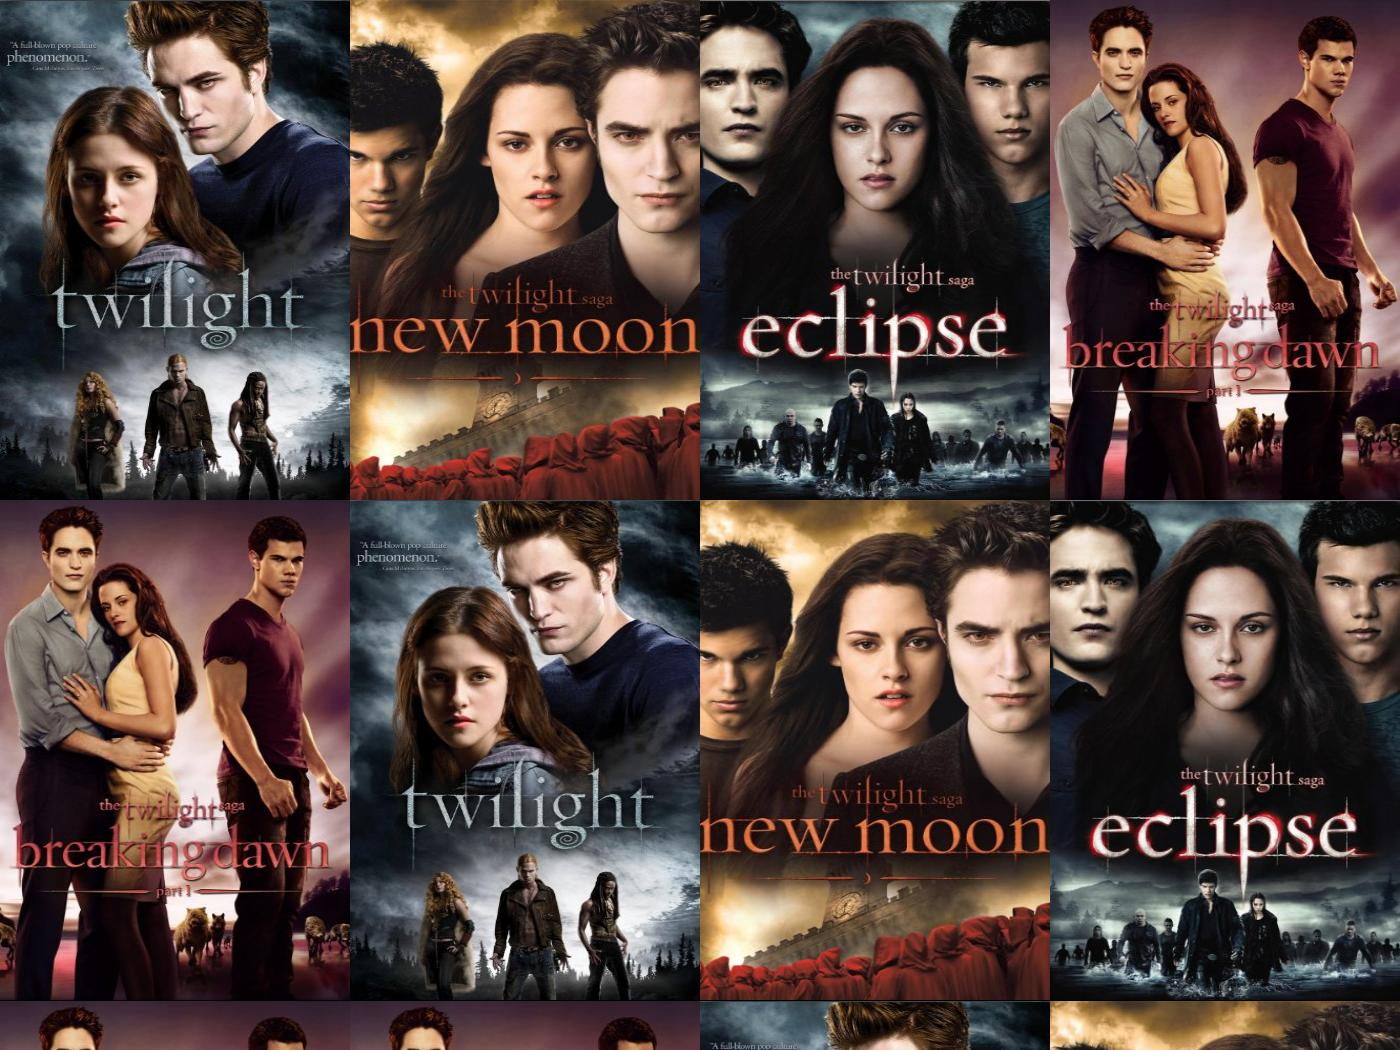 Download twilight eclipse